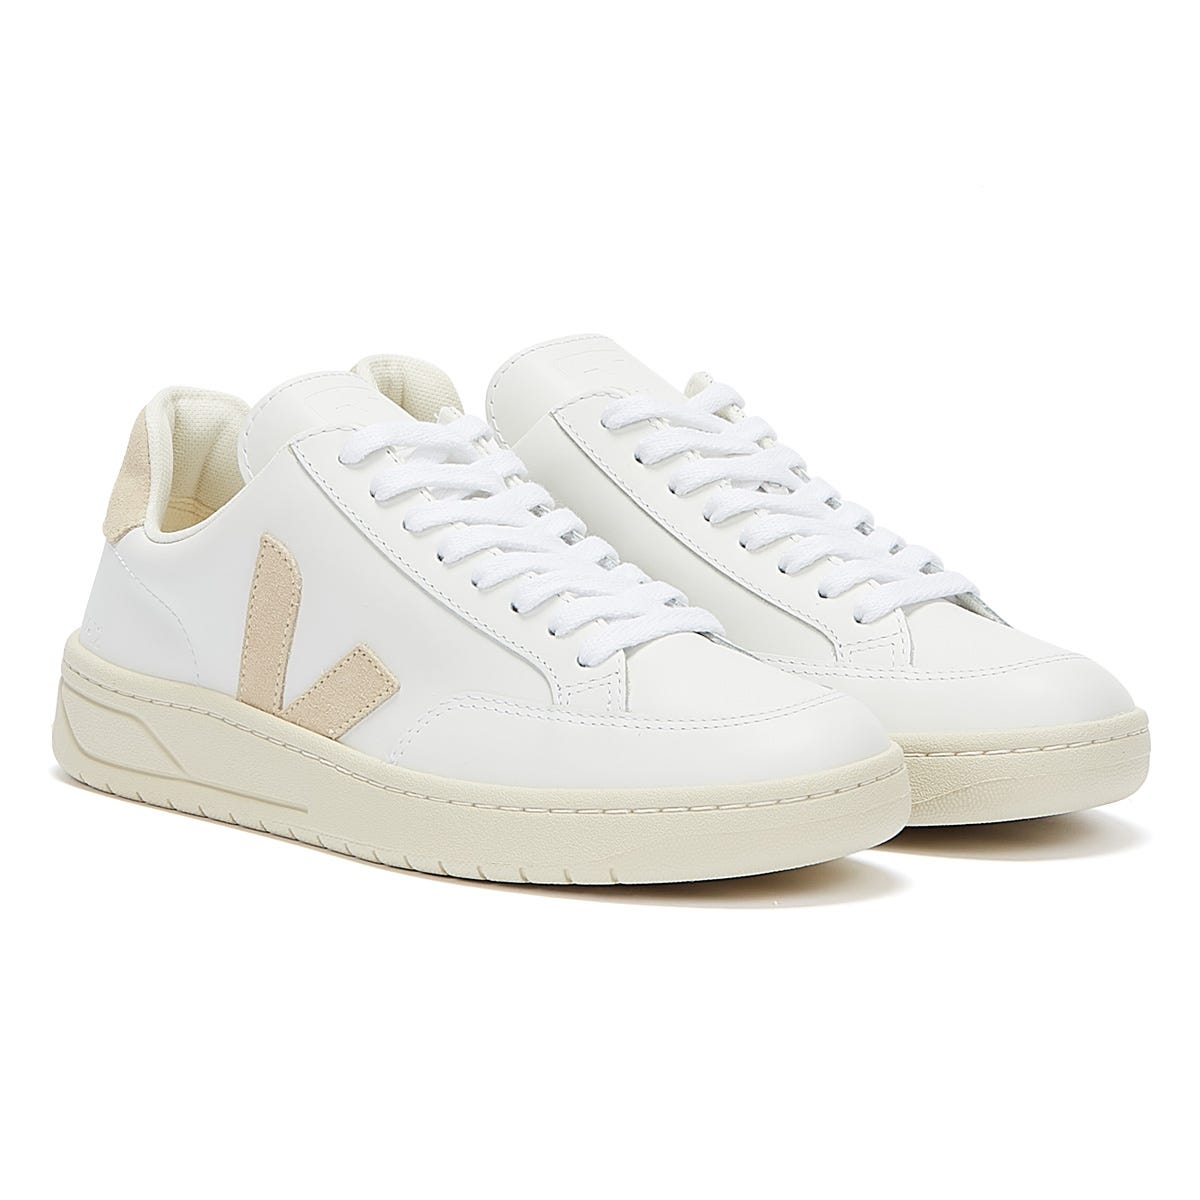 Trainers & Running Shoes Veja V-12 Womens Extra White / Sable Trainers